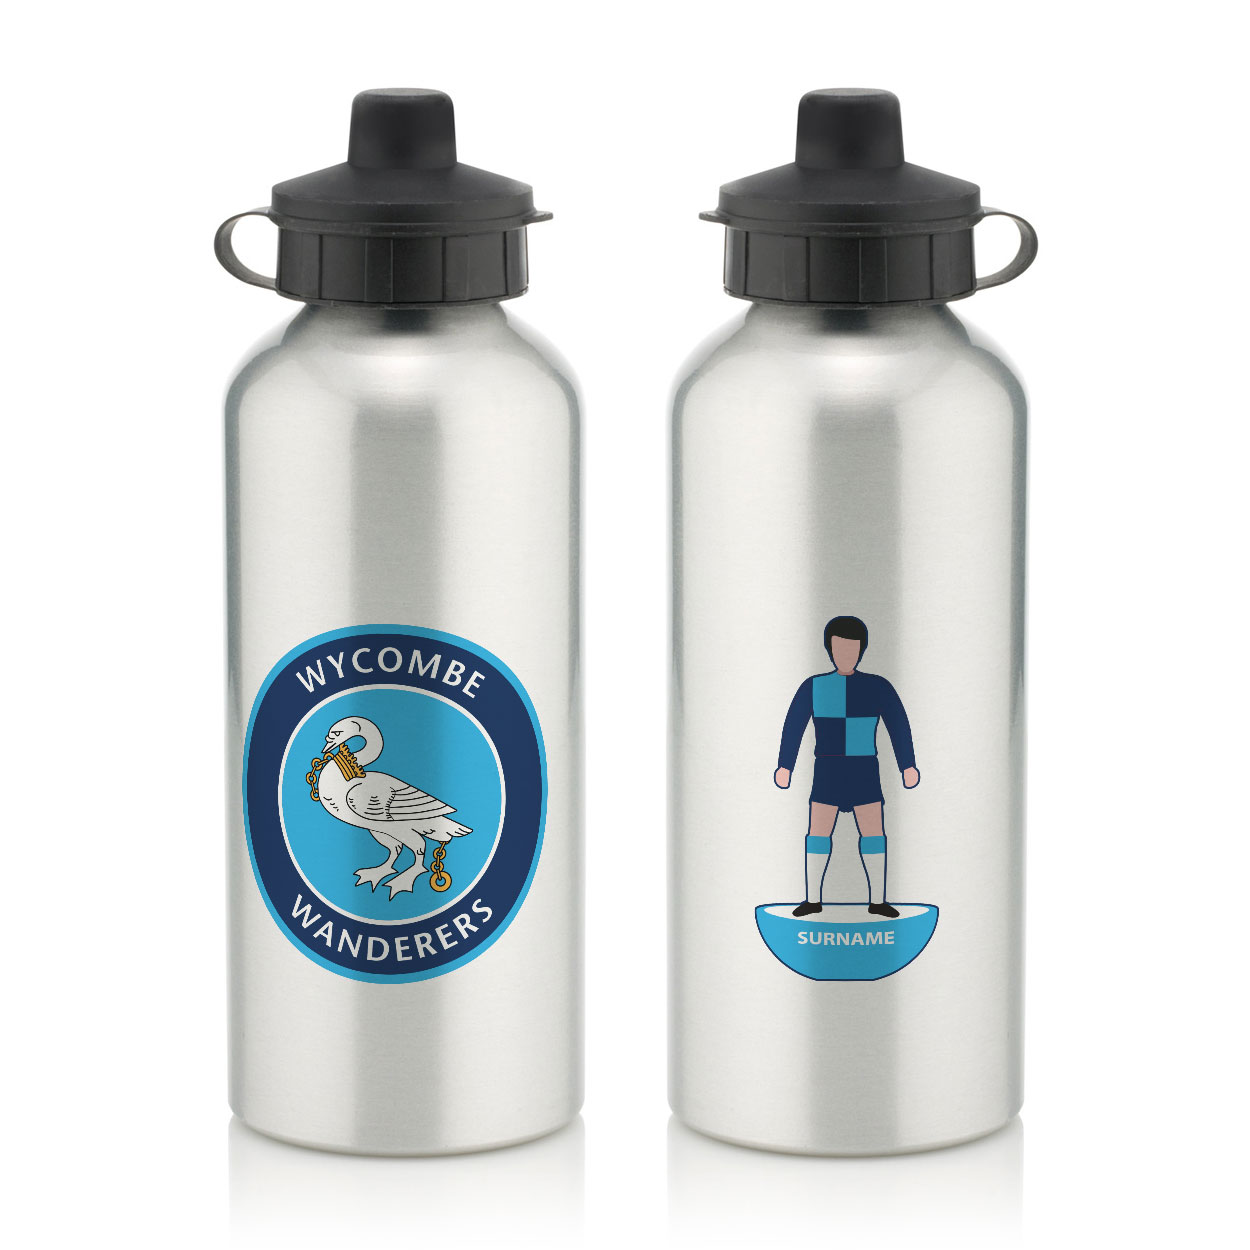 Wycombe Wanderers Player Figure Water Bottle